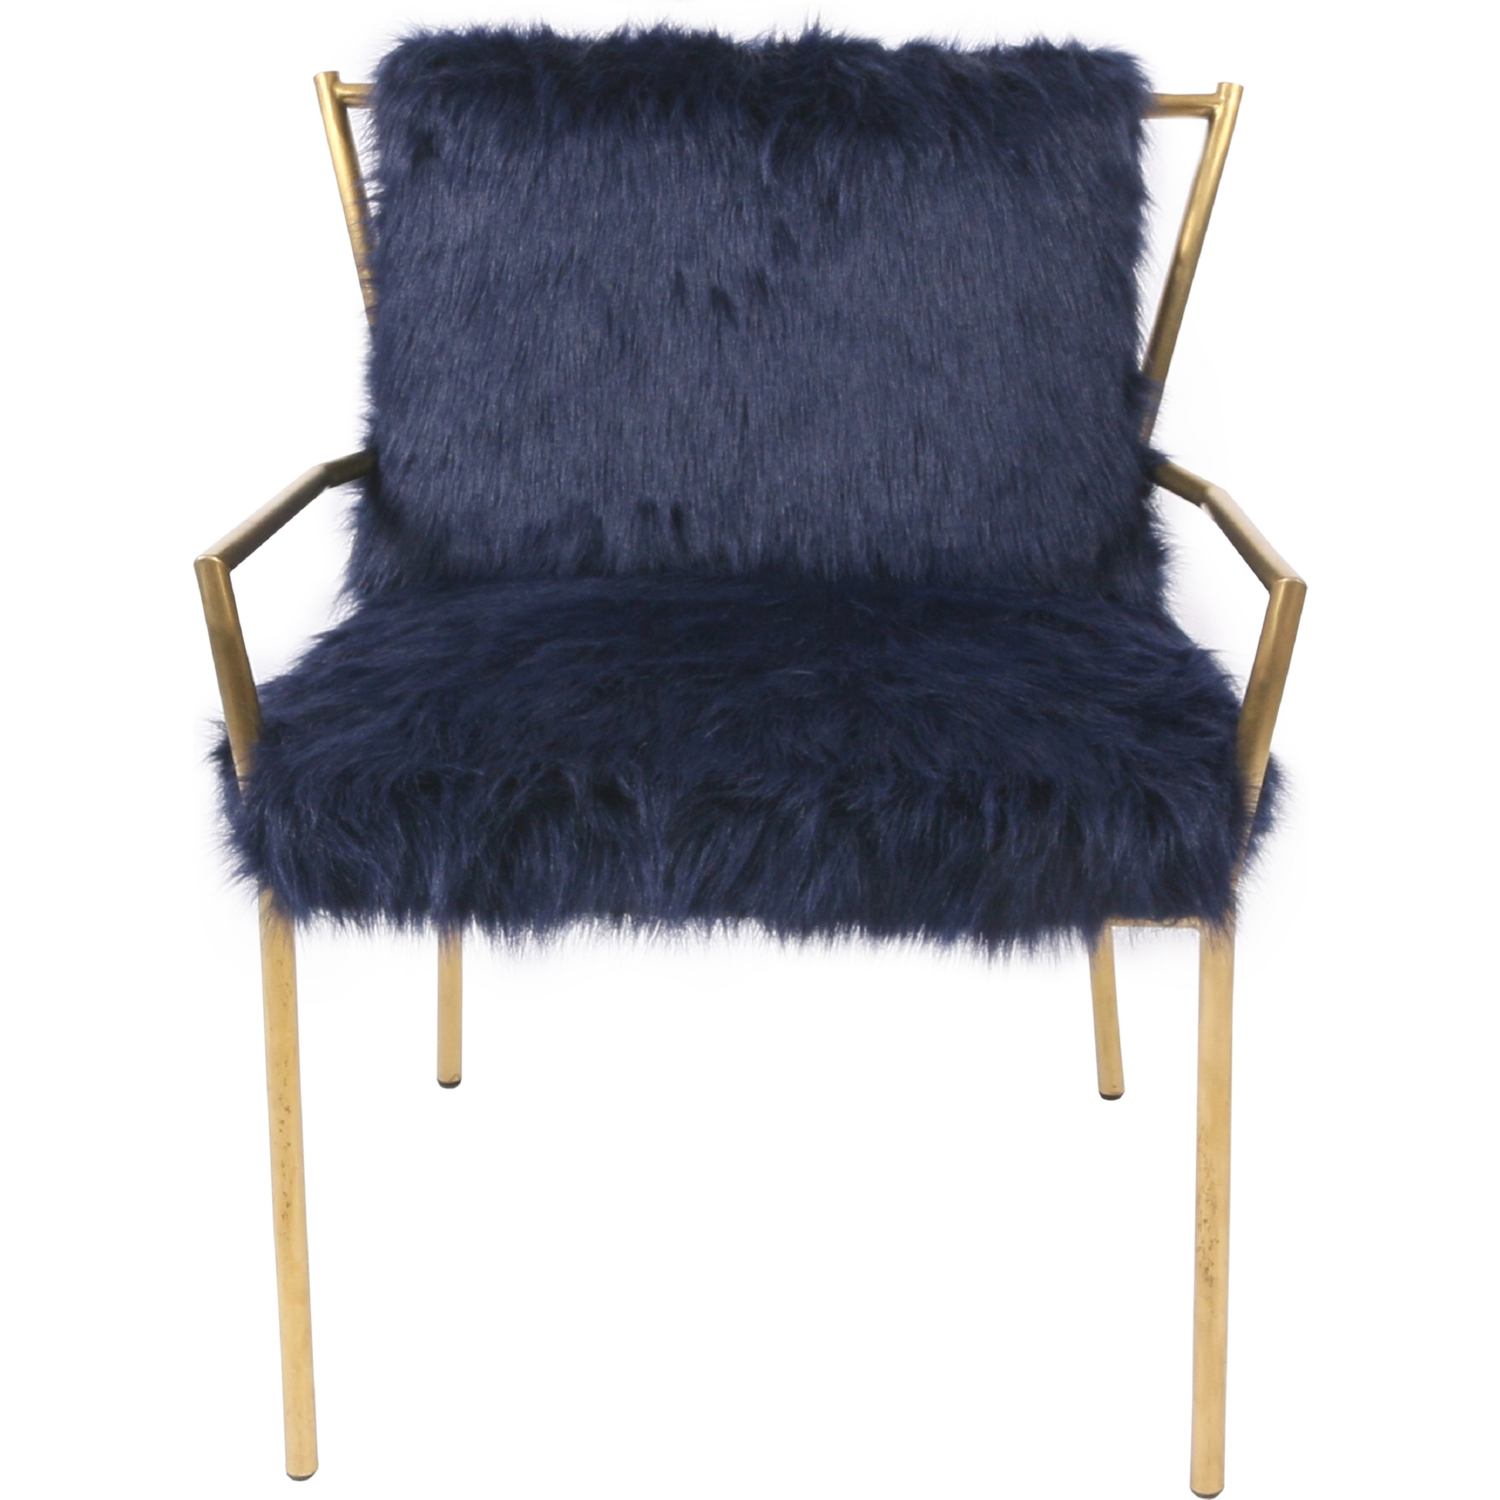 New Pacific Direct F2 Duffy Accent Chair in Navy Blue Faux